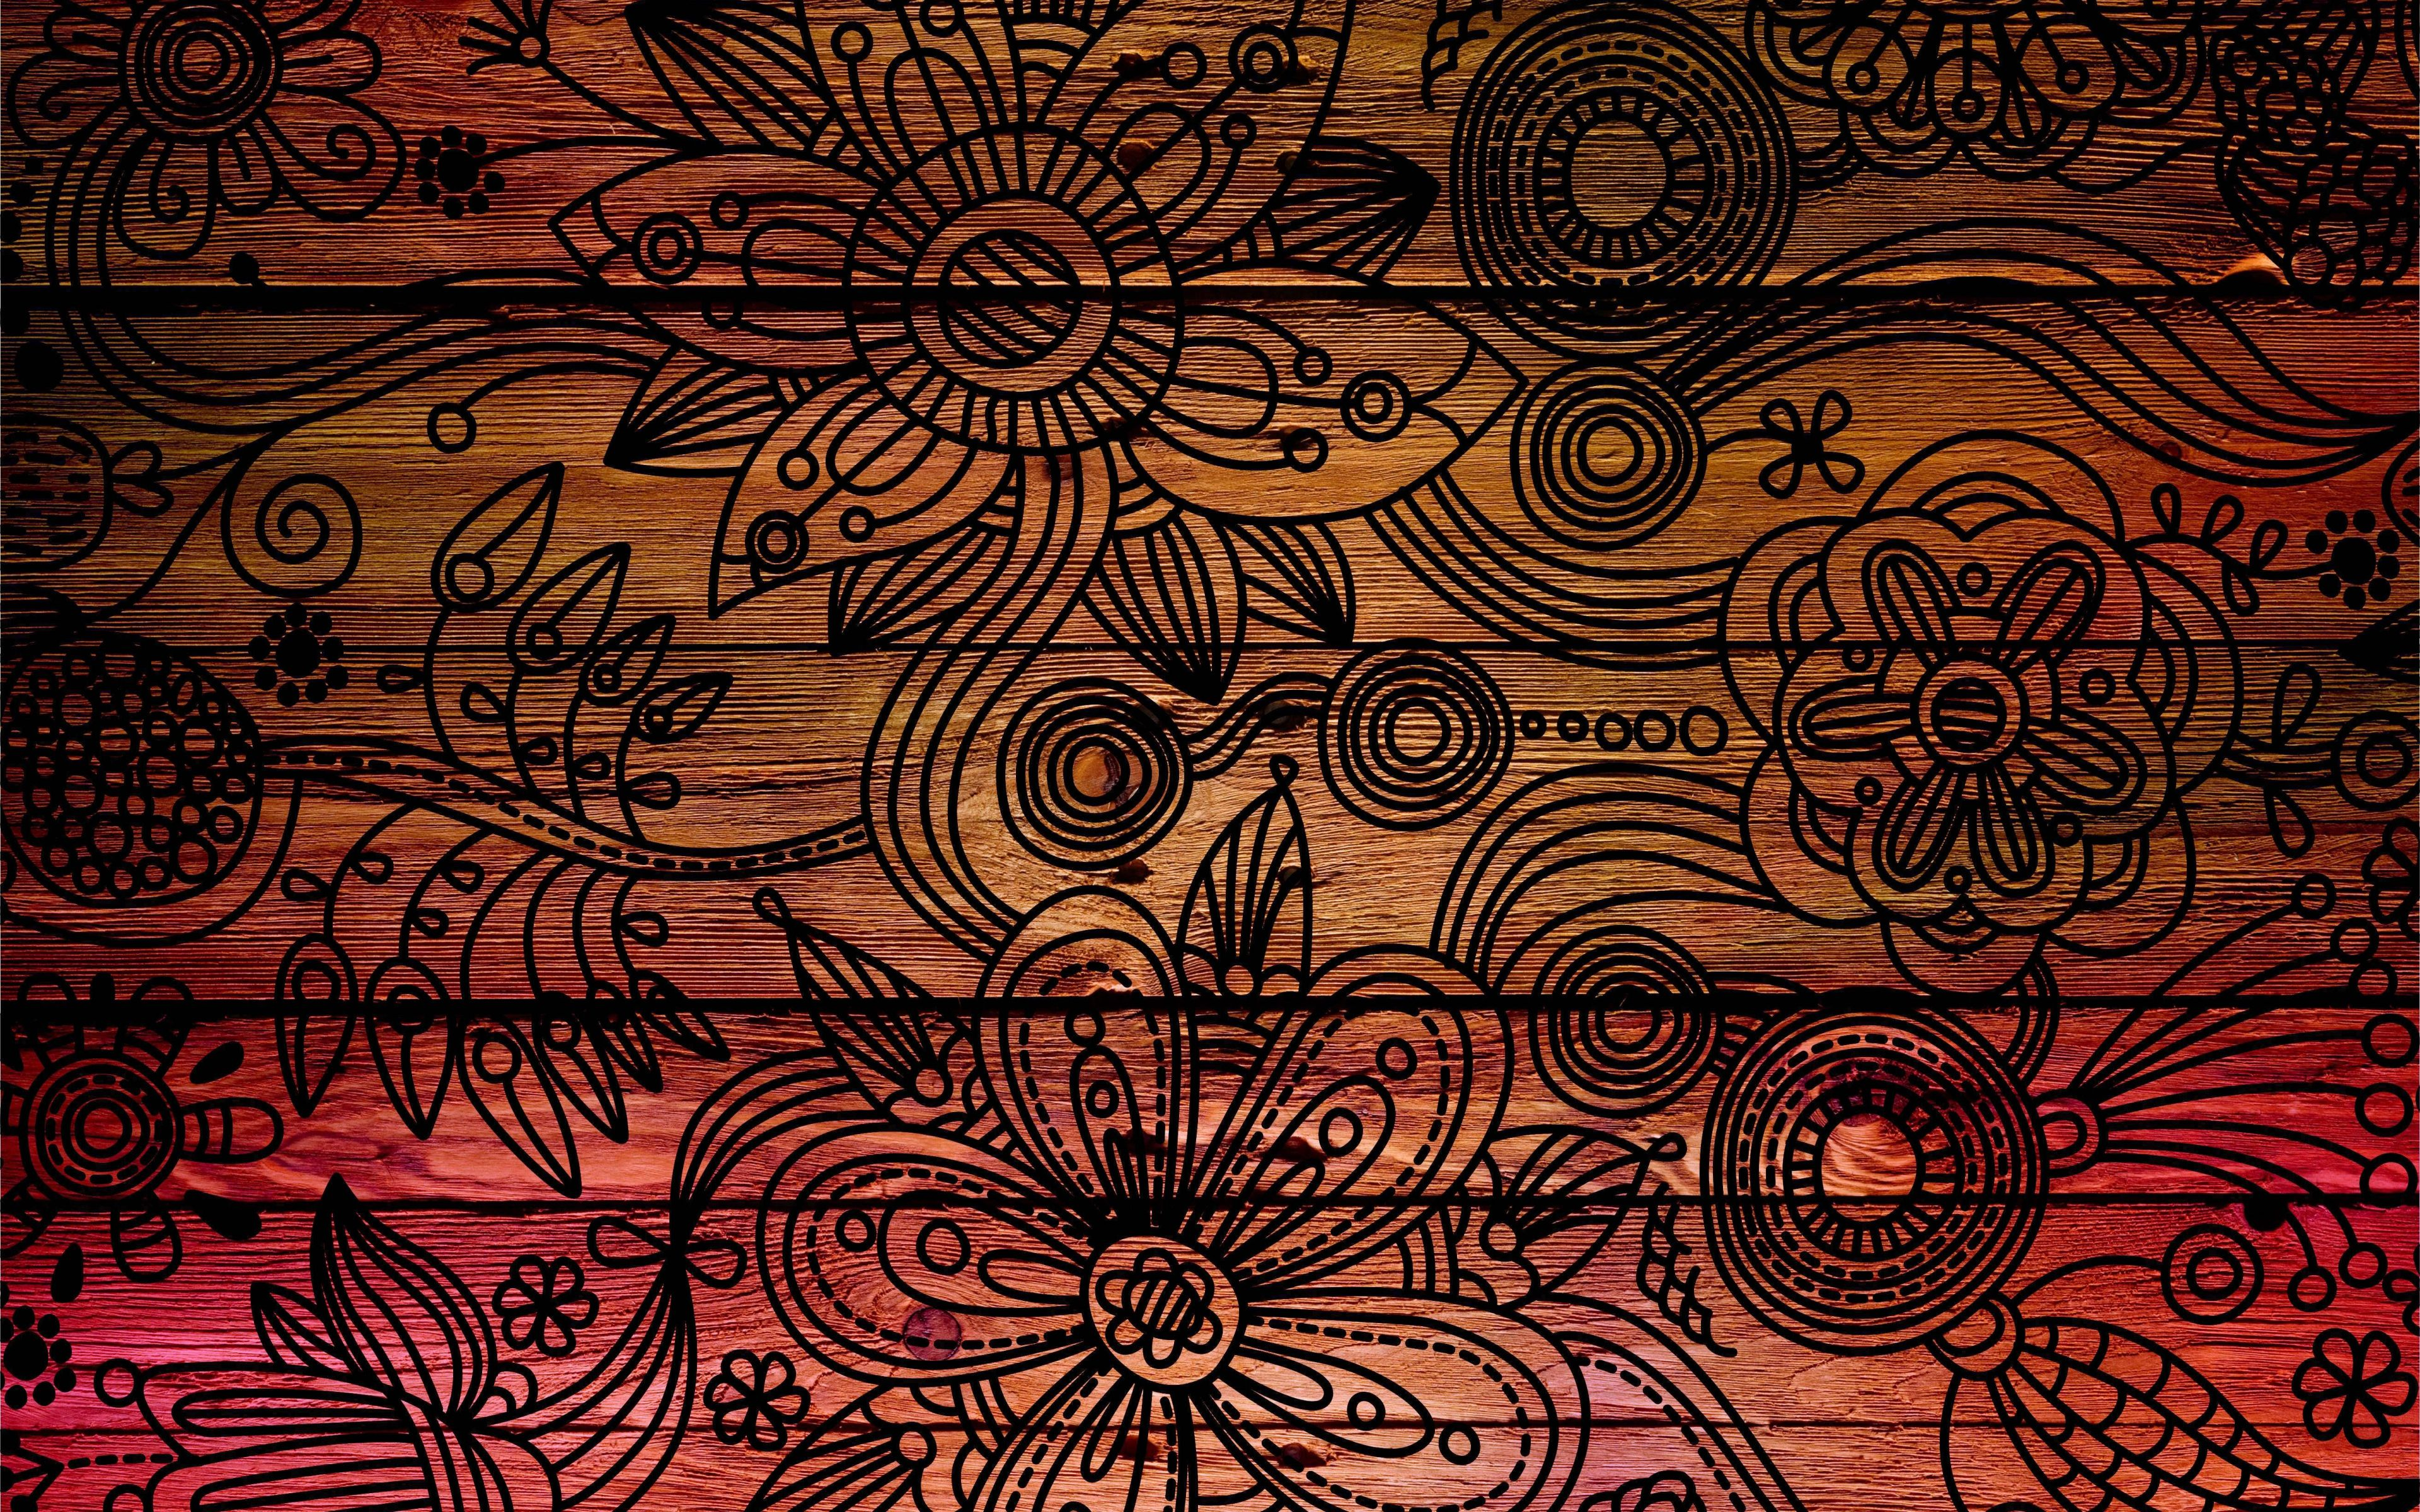 Texture Backgrouns Free Download Wallpapers Backgrounds Images Art Photos Textured Wallpaper Pattern Wallpaper Background Patterns